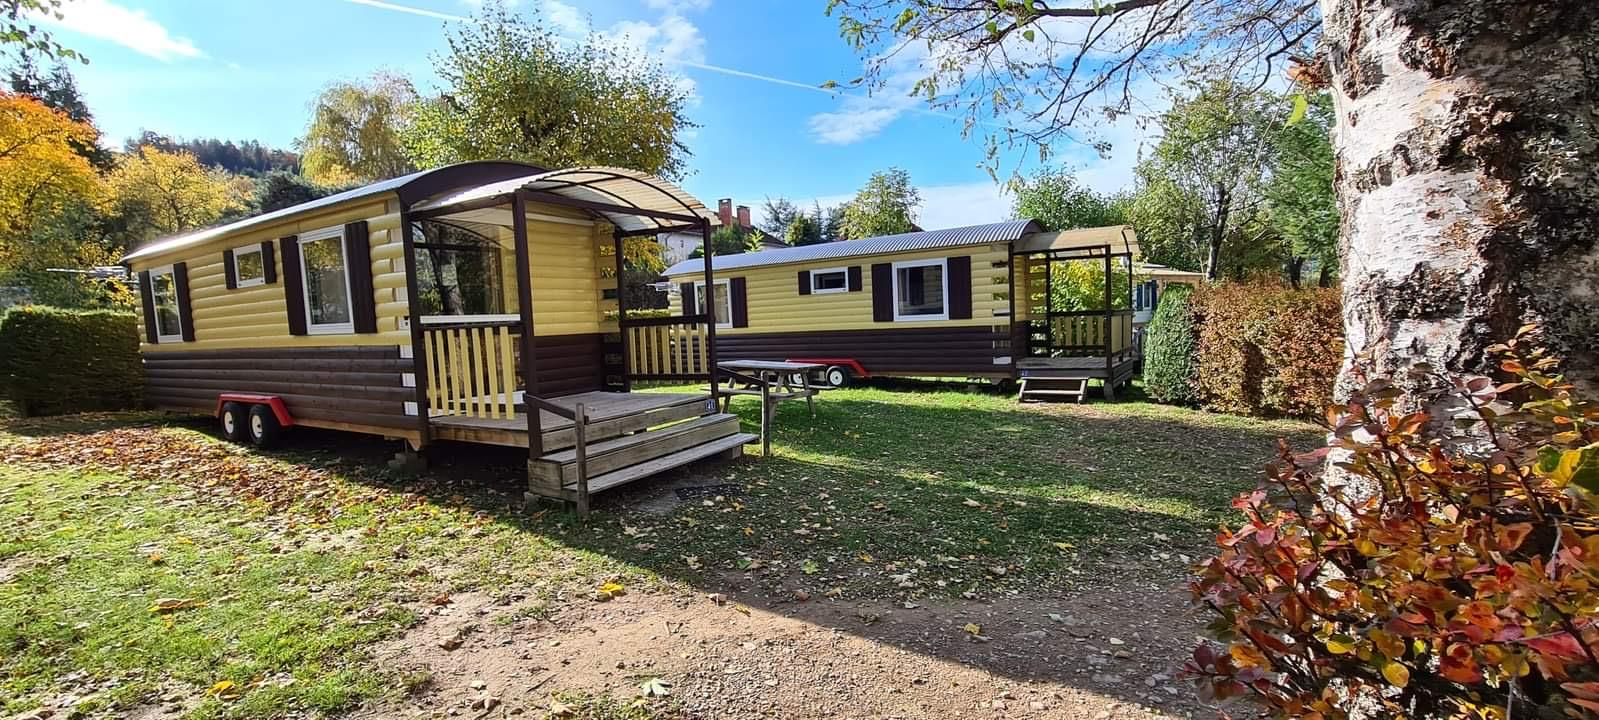 Location - Roulottes - Camping Les Deux Pins